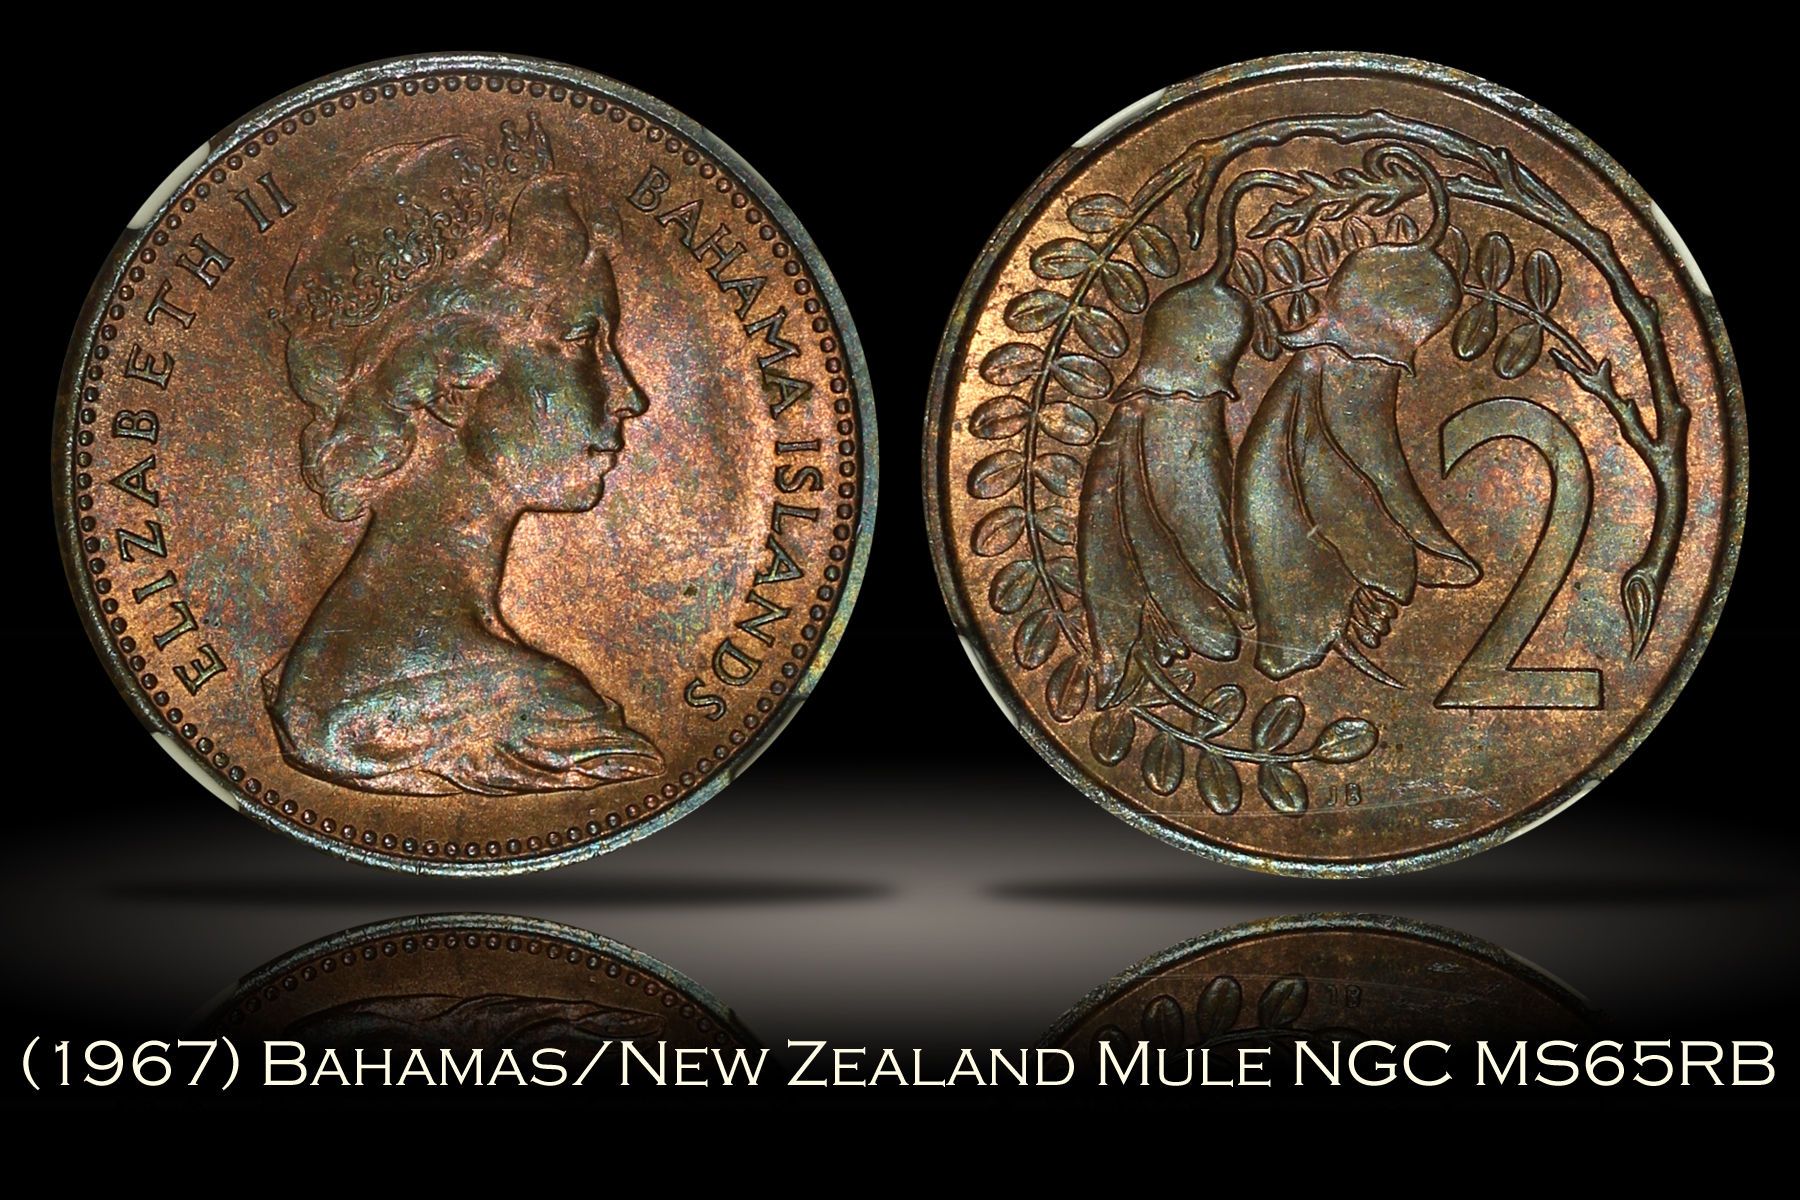 Michael Kittle Rare Coins - 1967 Bahamas New Zealand 2 Cent Mule NGC